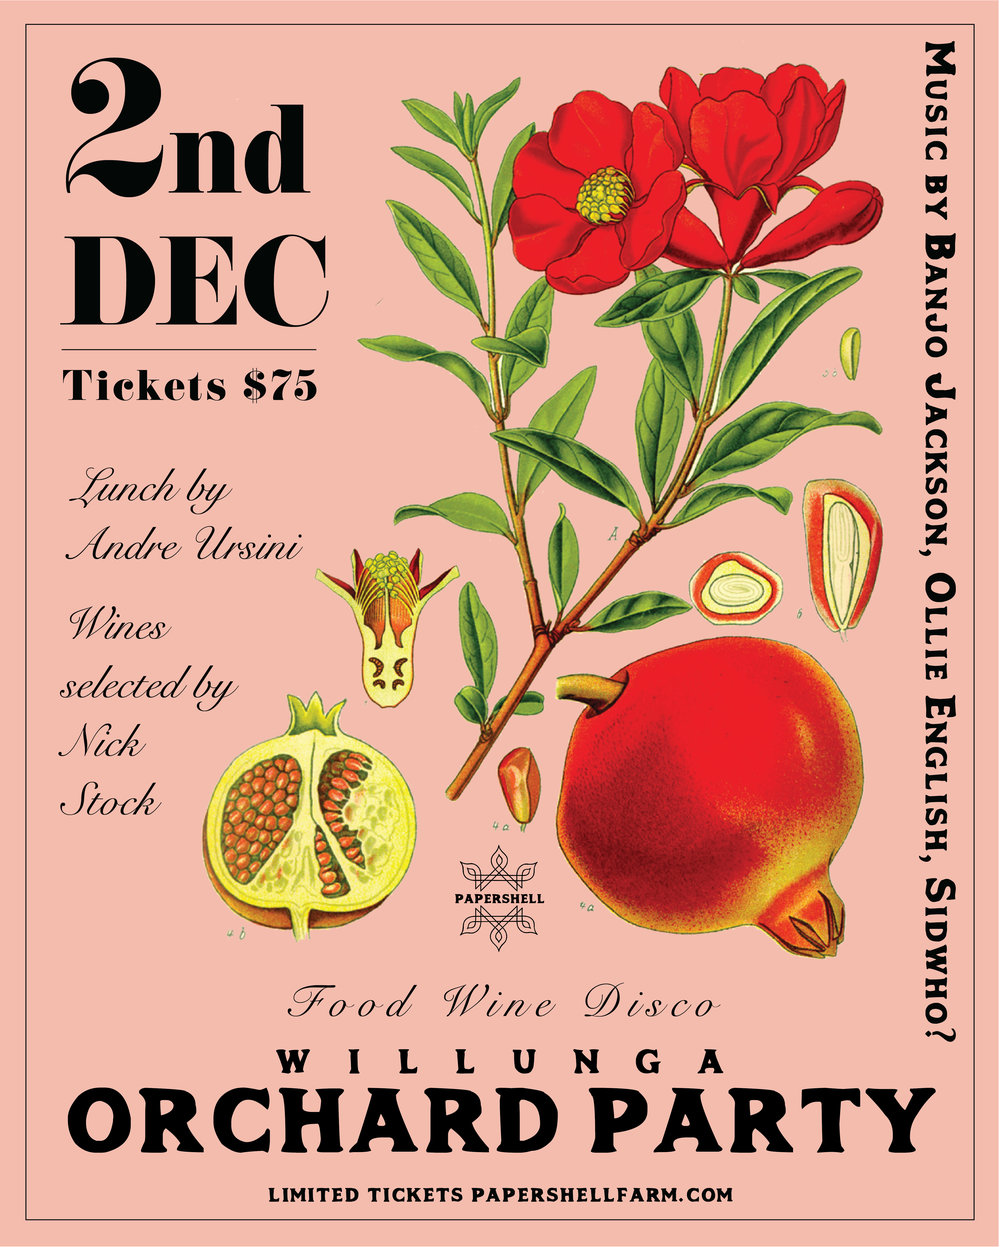 OrchardPartyFlyer_Insta_FINAL RBG-01.jpg